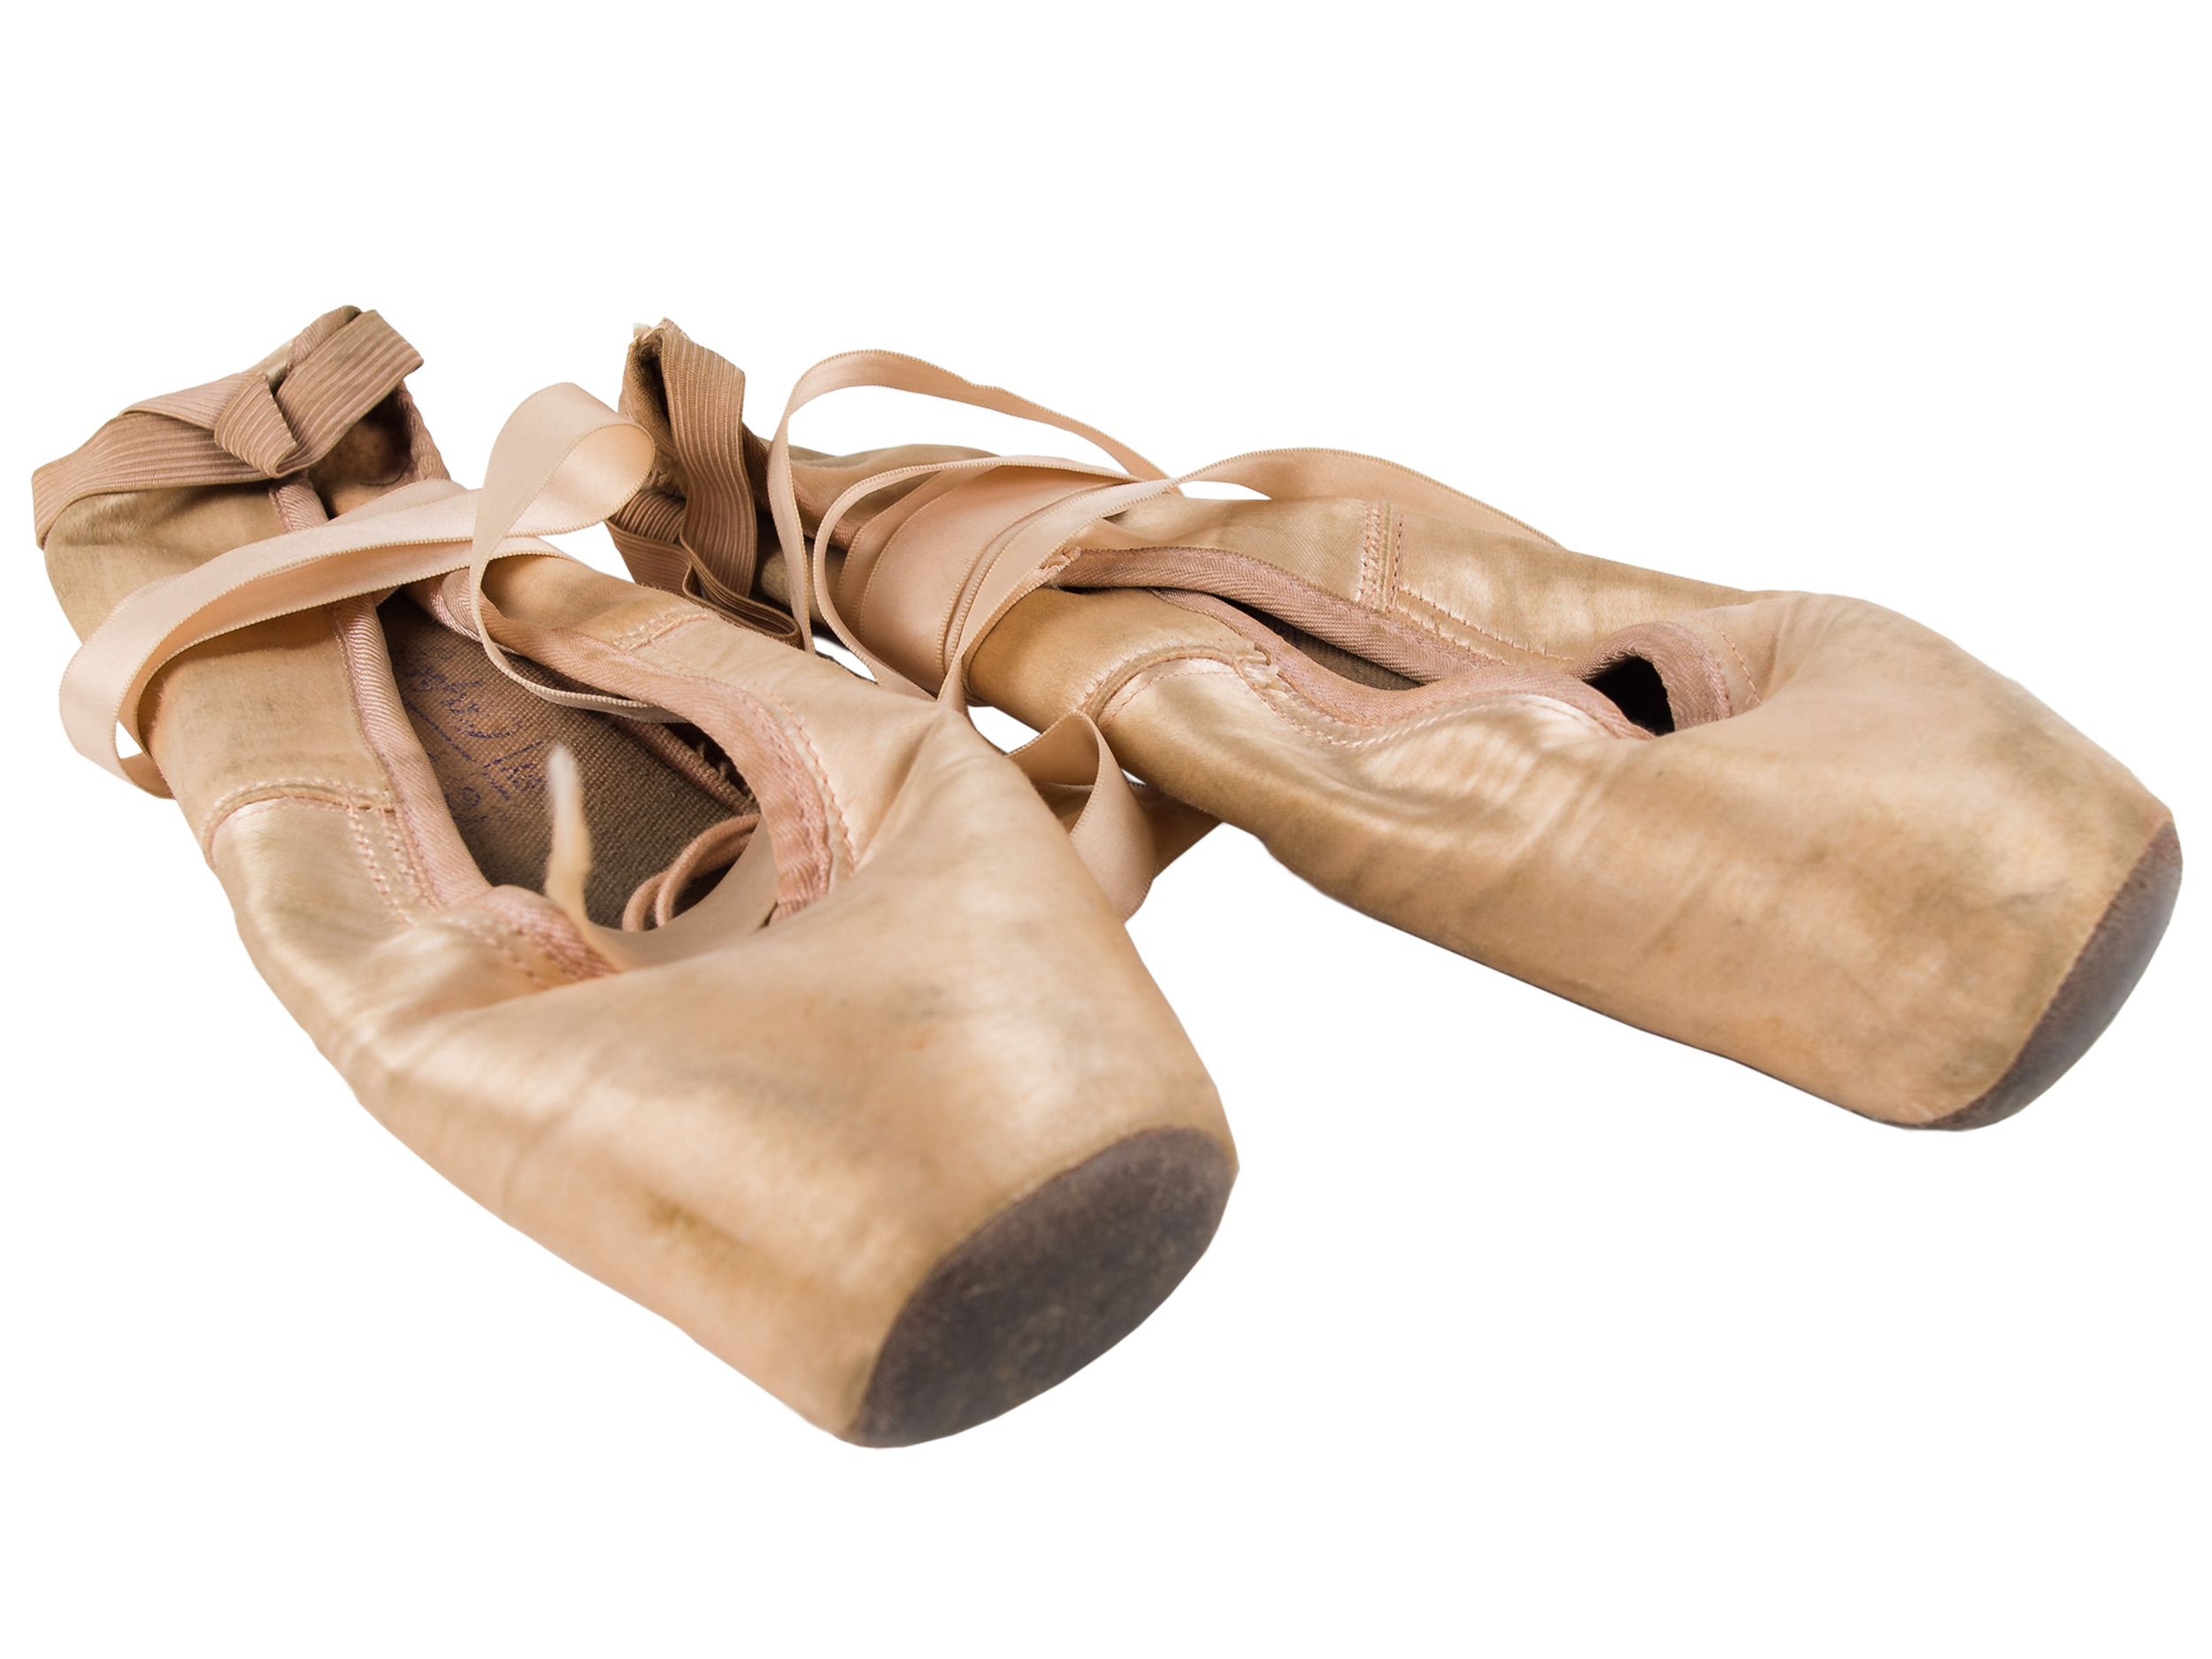 Candida Royalle's ballet shoes, 1965, and diary, 1971–1974